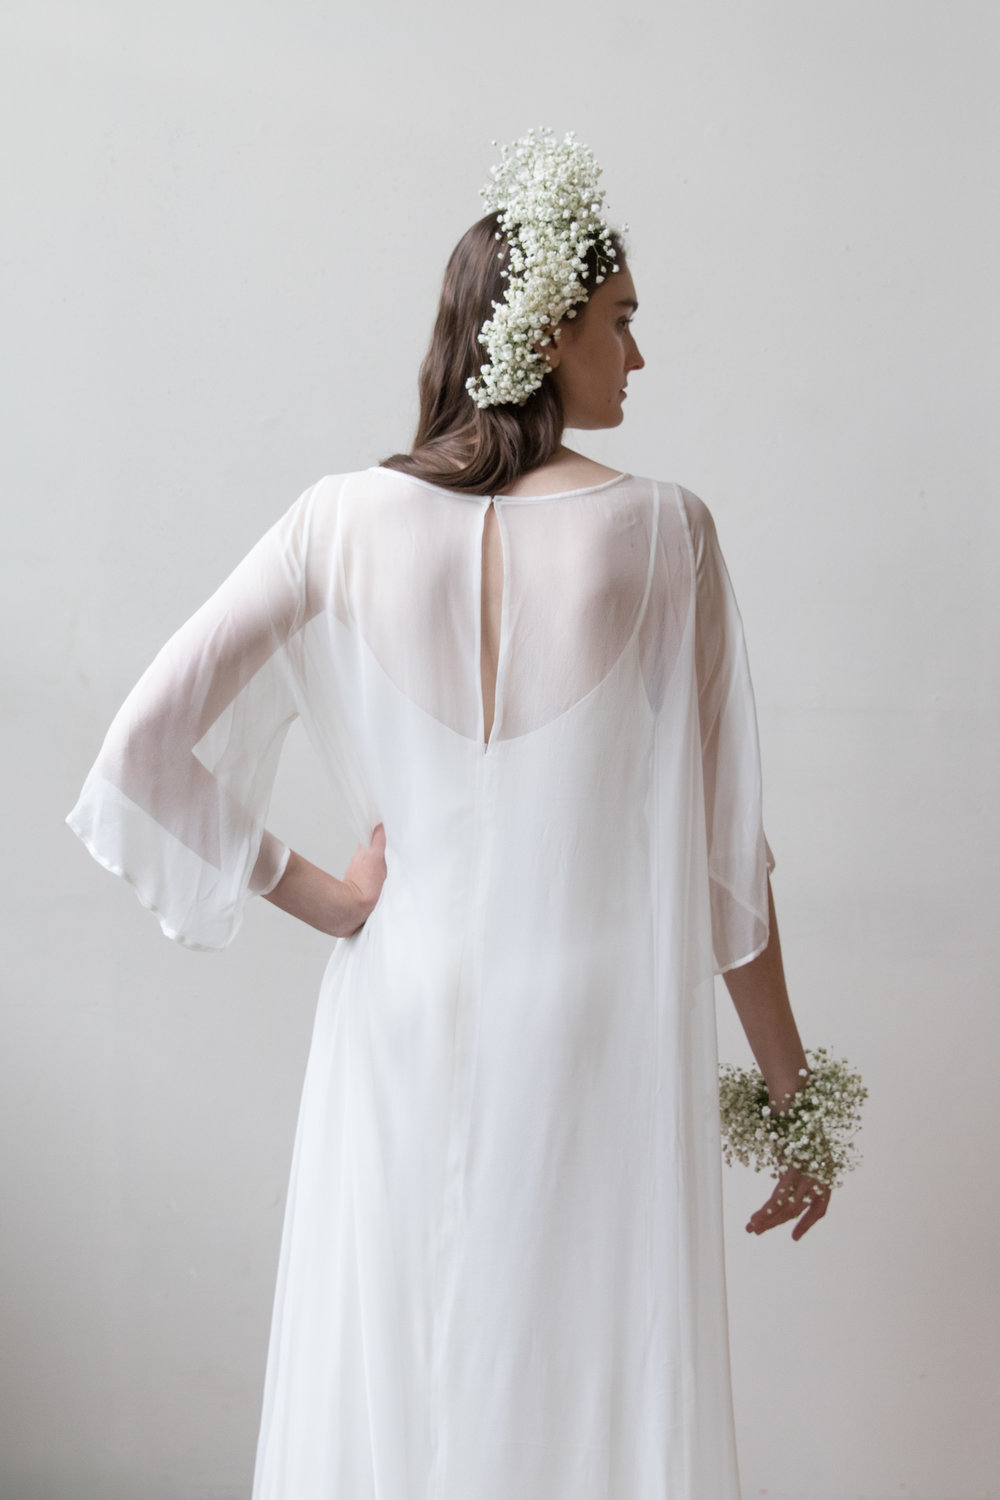 FRANNY back detail-Sweet Nothing CLF-16.jpg